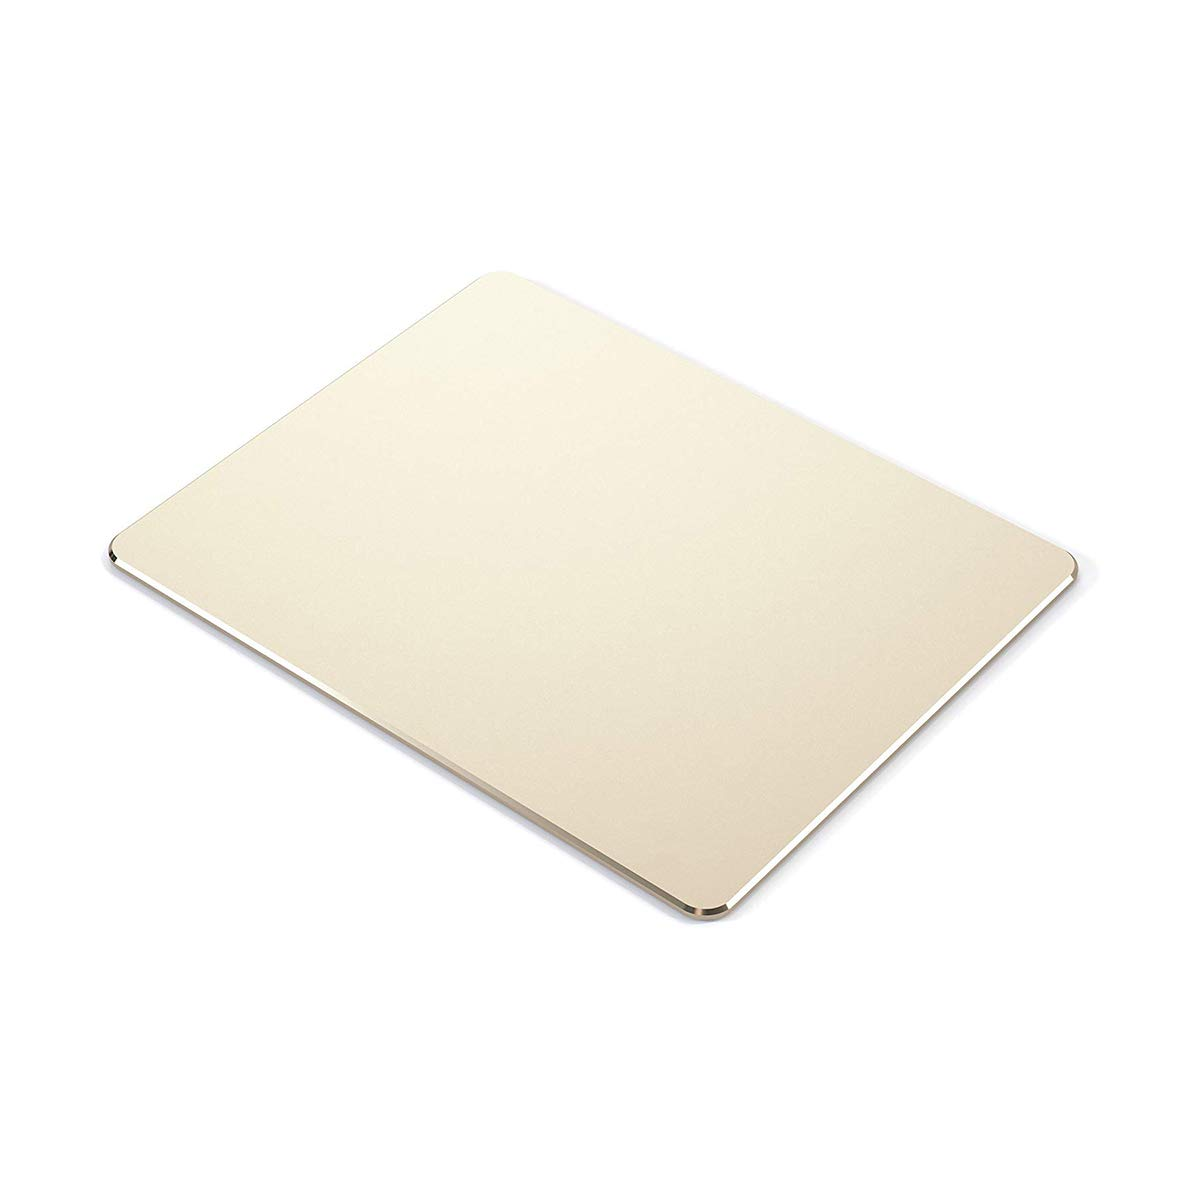 Thin Hard Mouse Pad Aluminum Alloy Mouse Pad Winter and Summer Dual-Use Waterproof Antiski Matte Metal//High-Grade PU Leather Mouse Pad Rose Gold, 8.7X7.1